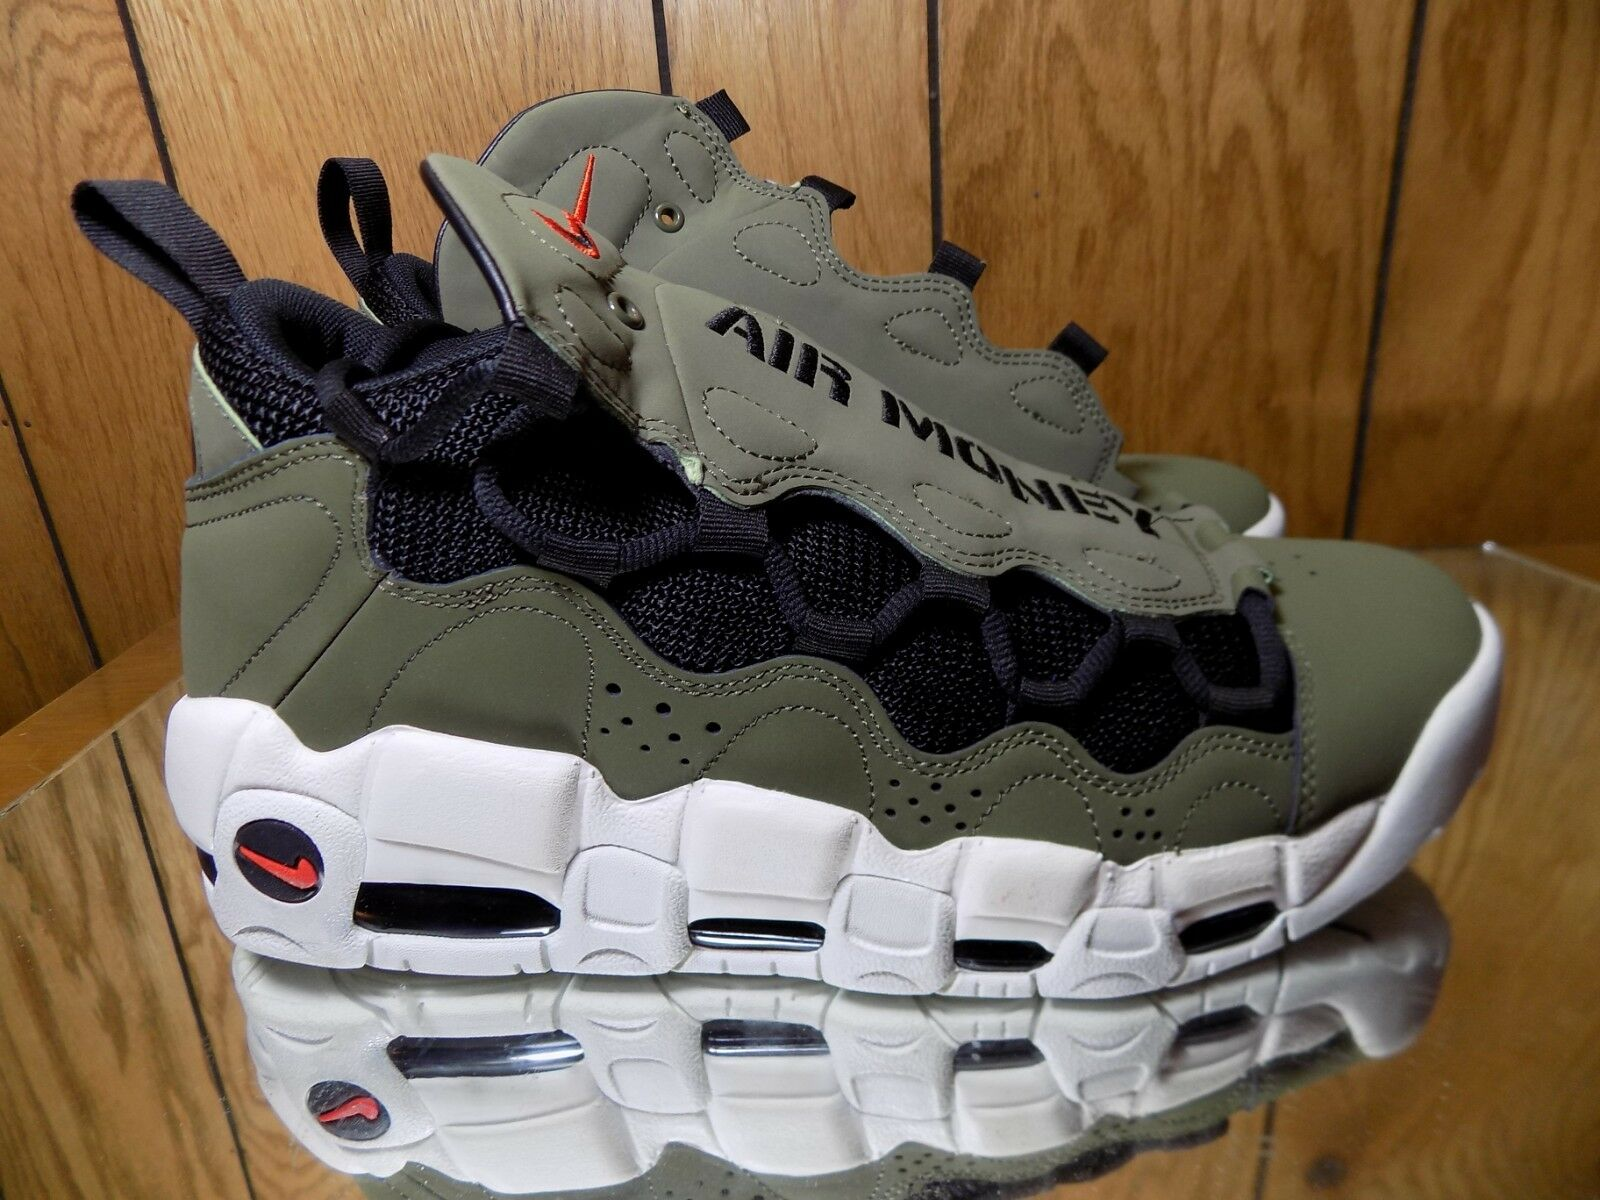 Nike Air More Money (Medium Olive Black-Habablack Red) shoes AJ2998-200 s 9